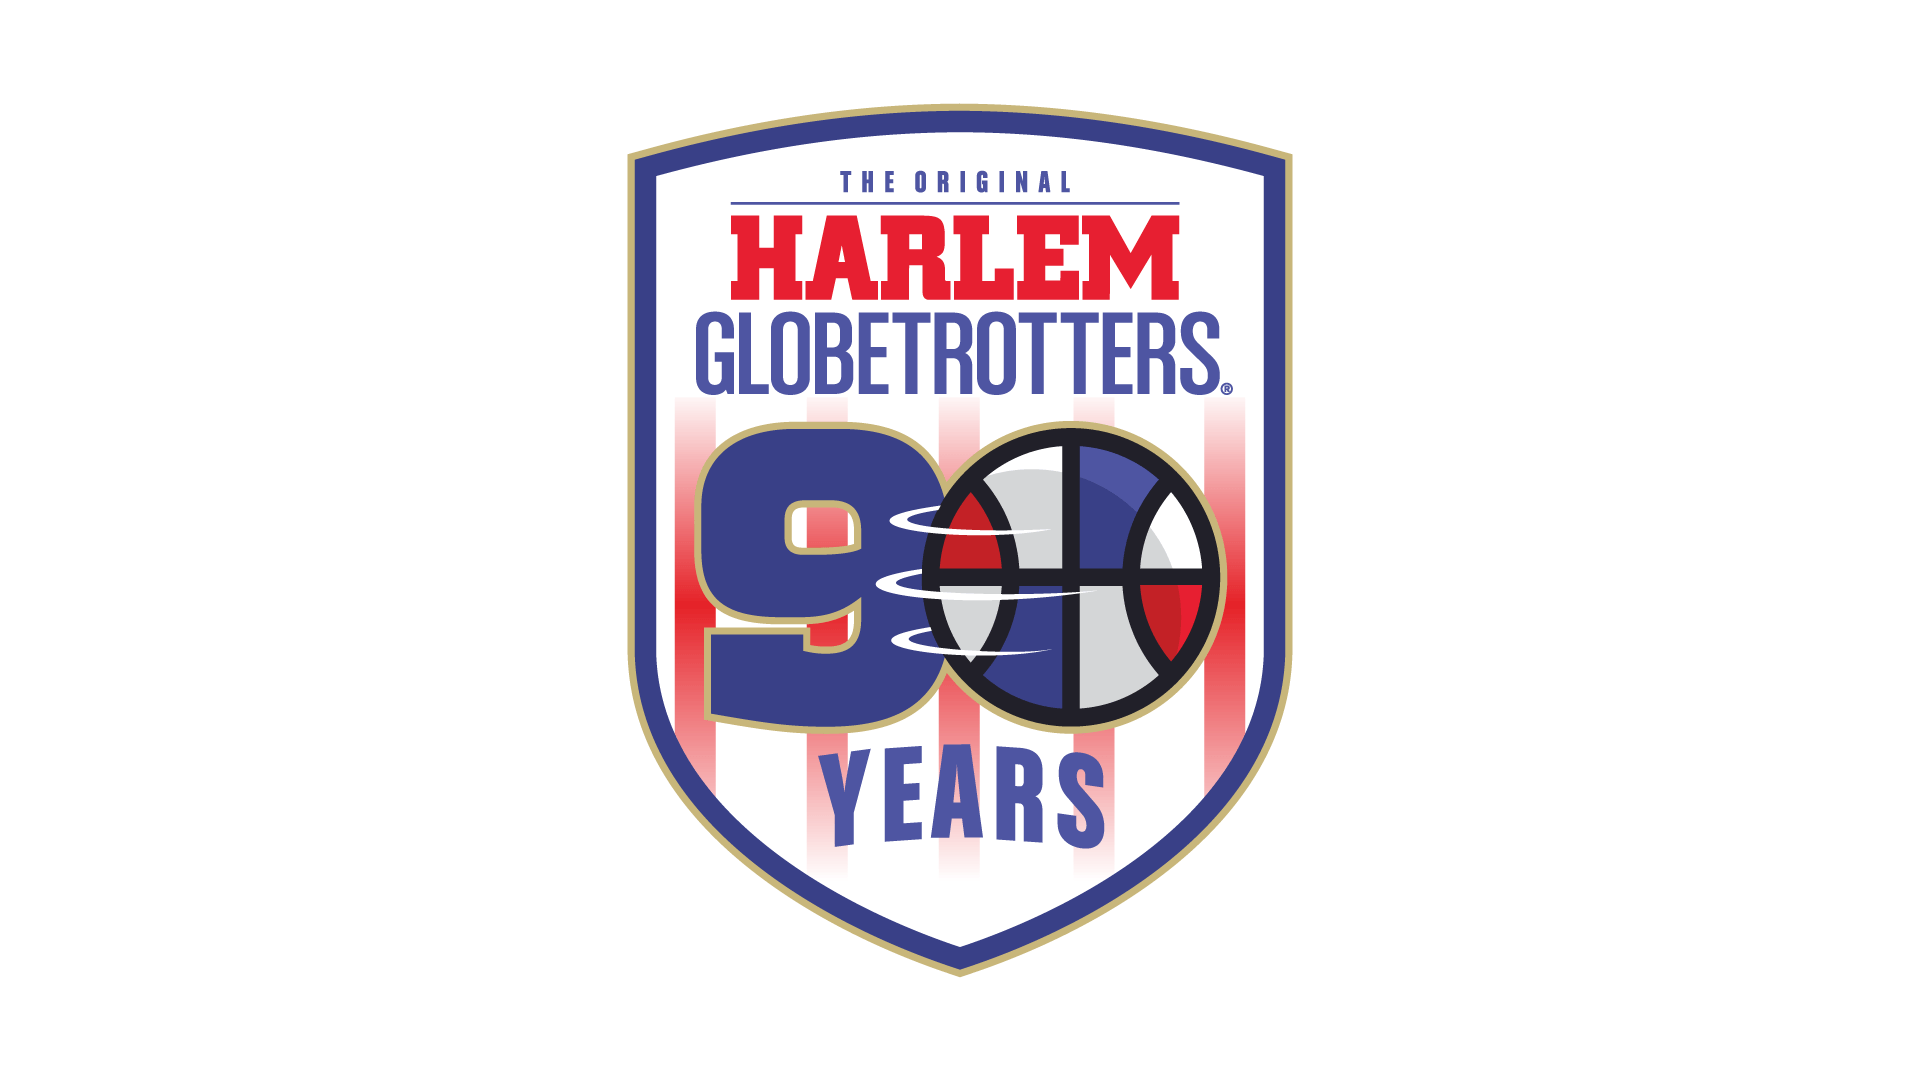 The Harlem Globetrotters Ring the NYSE Opening Bell®